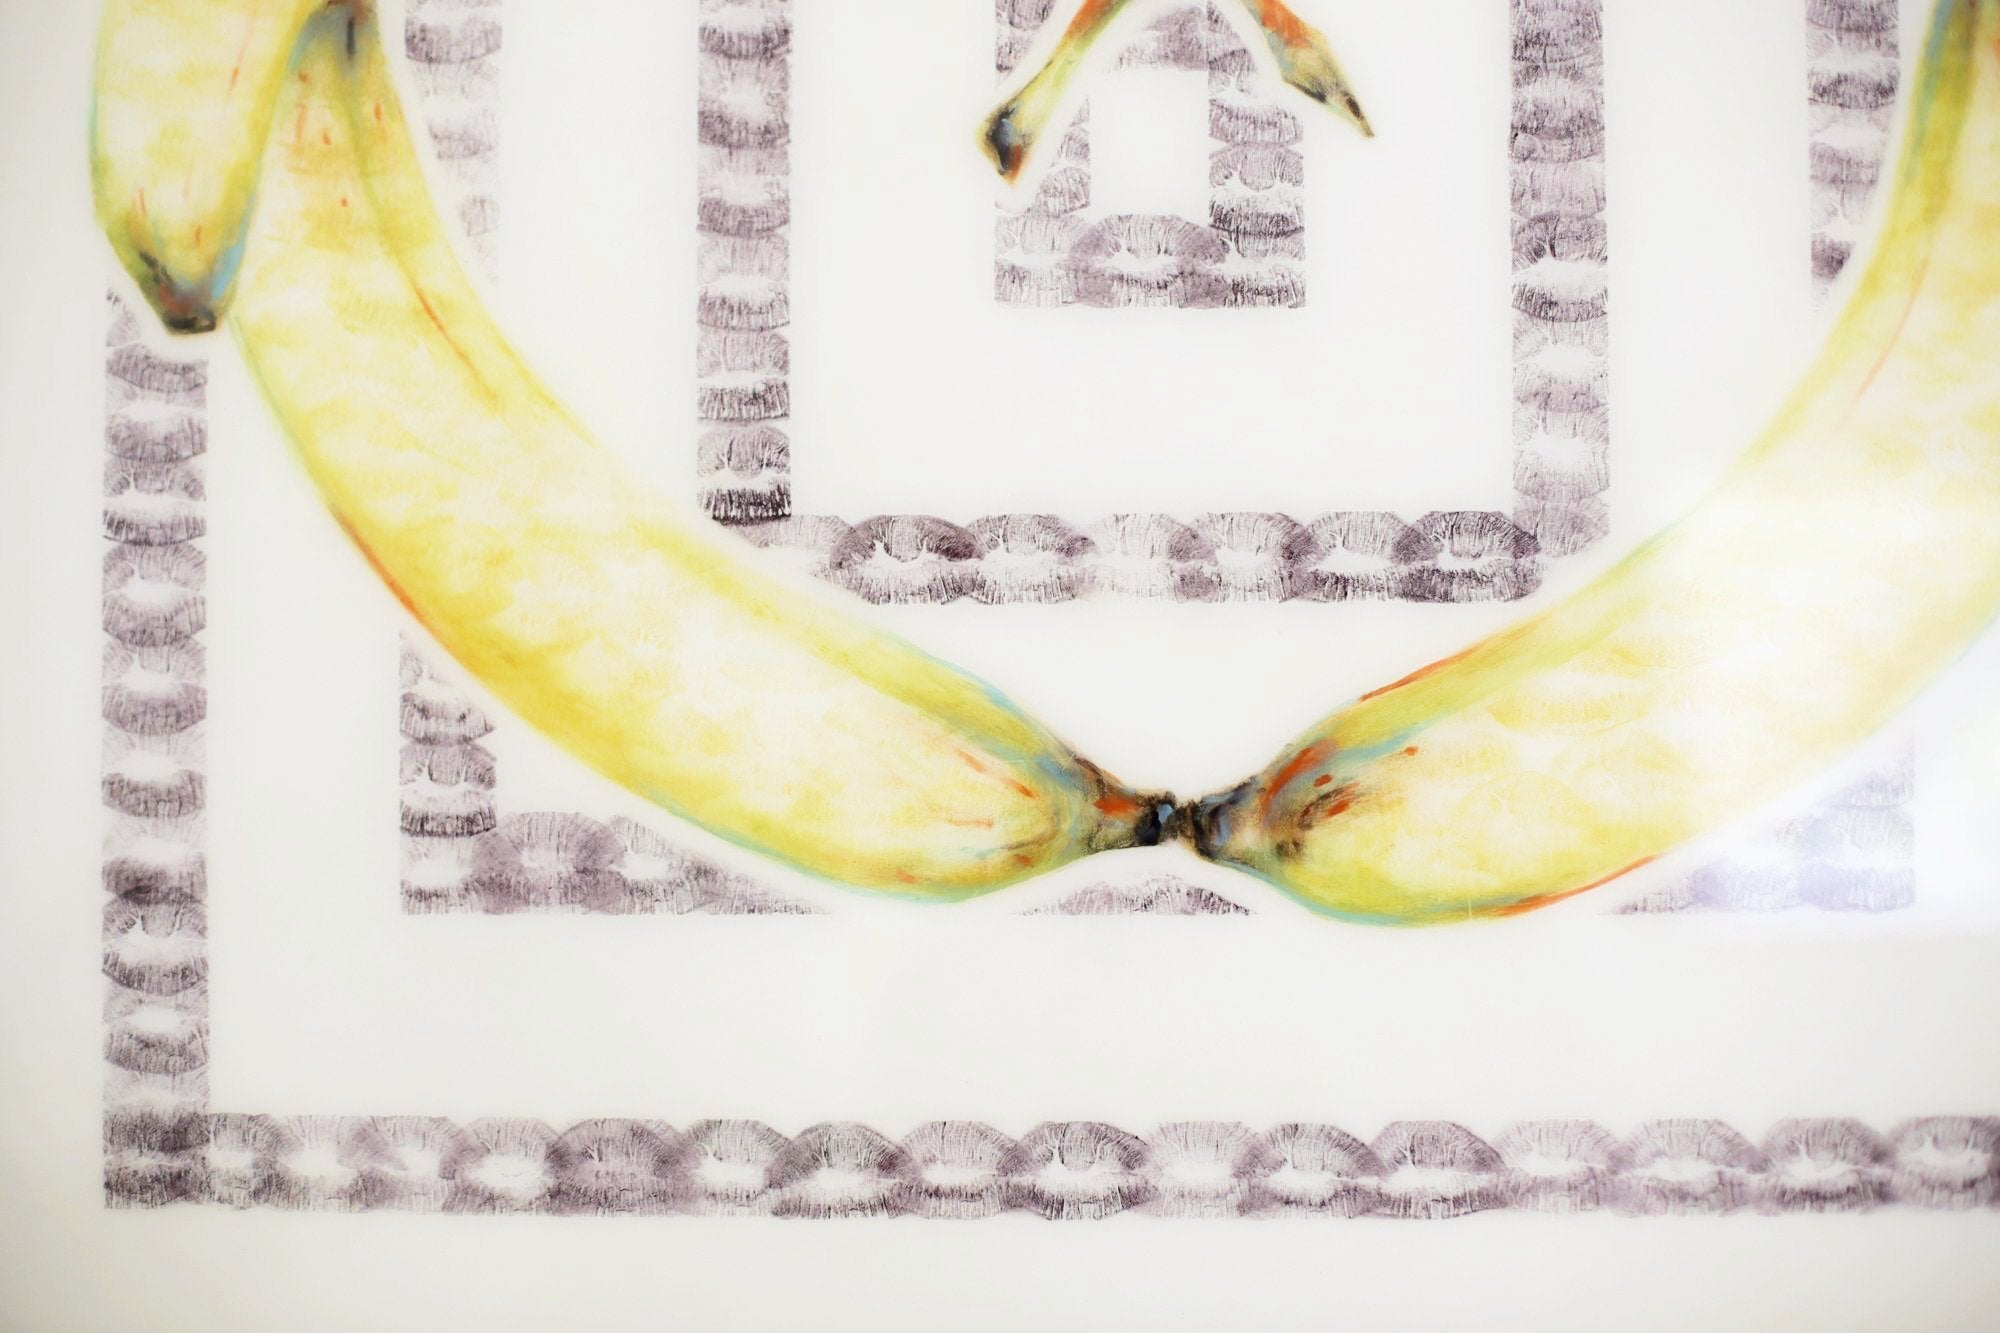 Lipstick Lex - Original Banana Art / Lipstick and Kiss Prints!